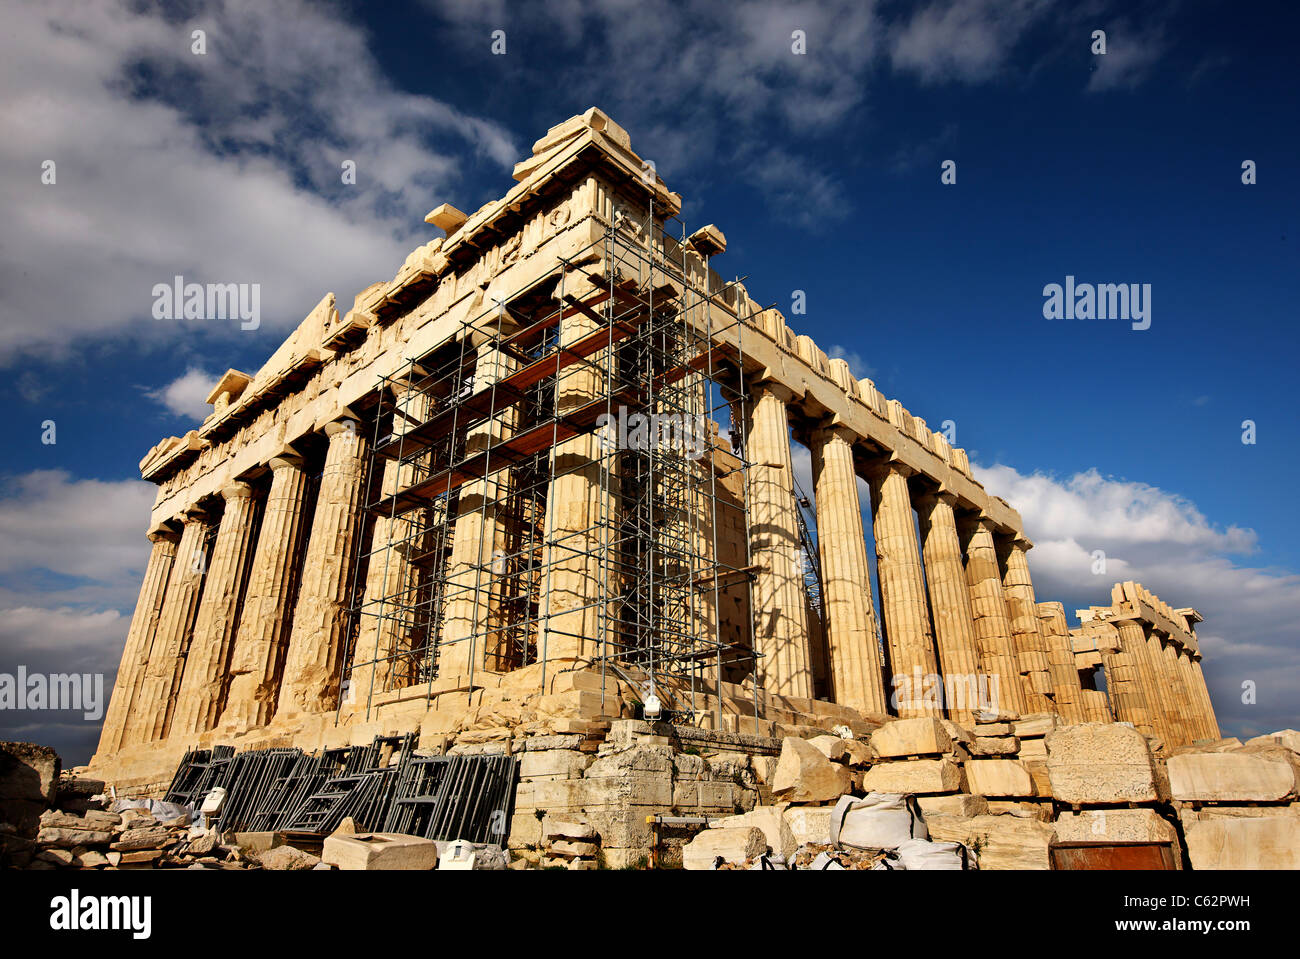 The Parthenon of the Acropolis of Athens, eternal symbol of classical beauty and  a priceless heritage for all mankind - Stock Image